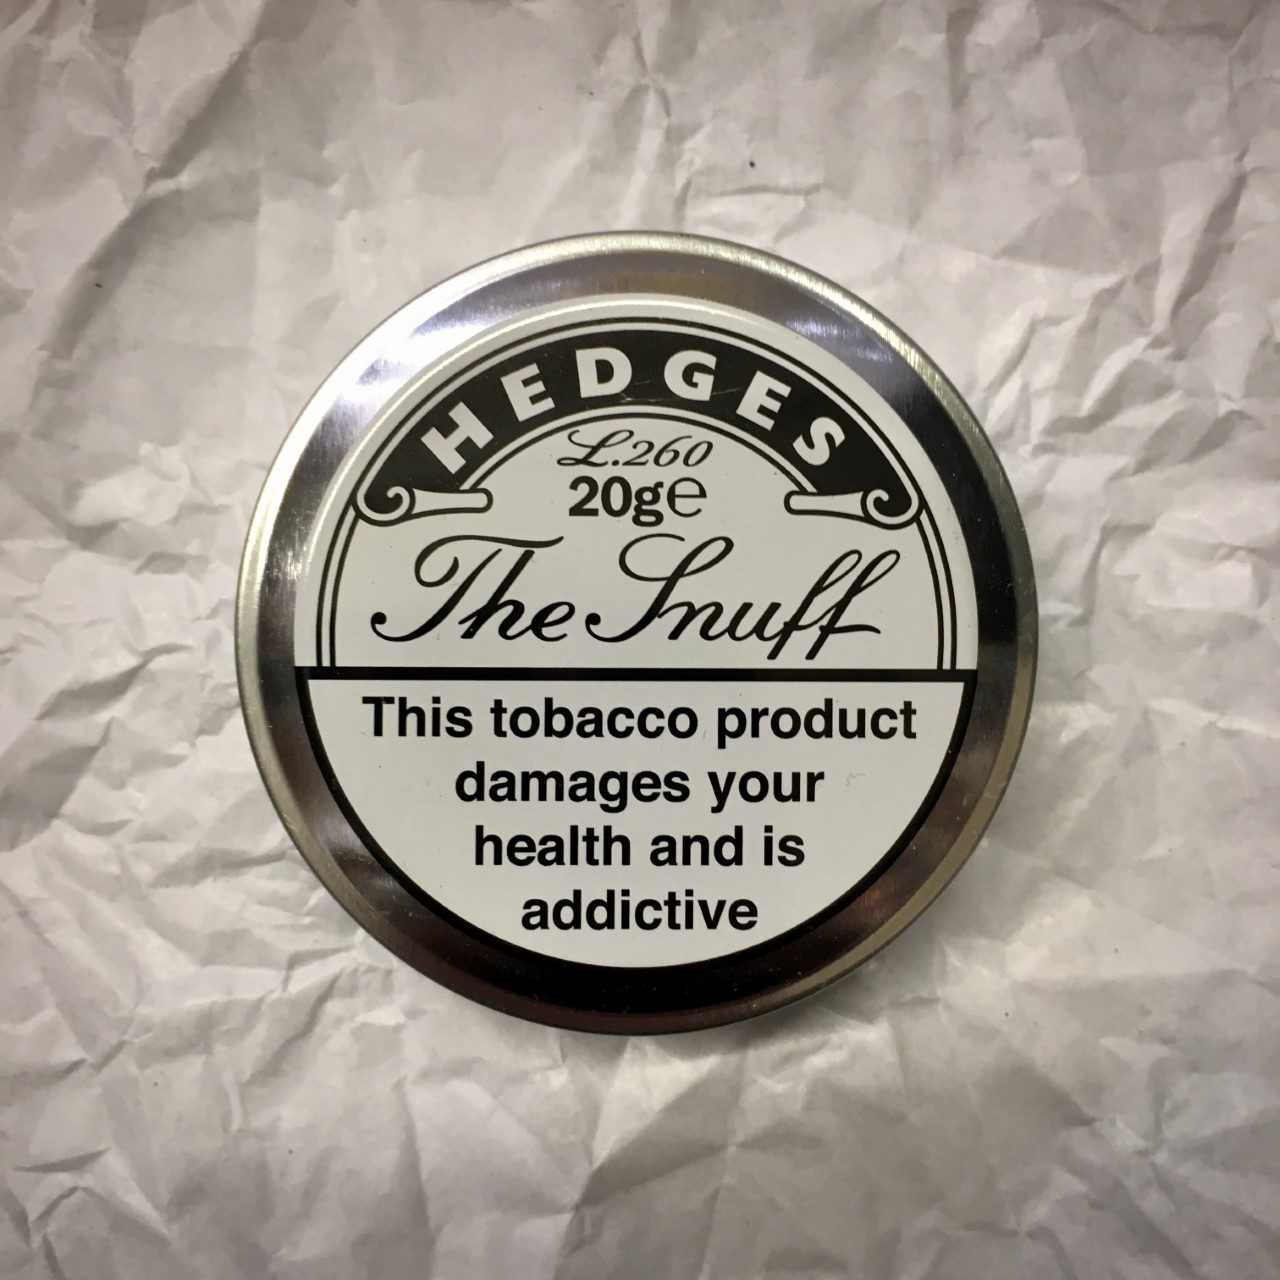 Hedges L260 Snuff - 20g Tin